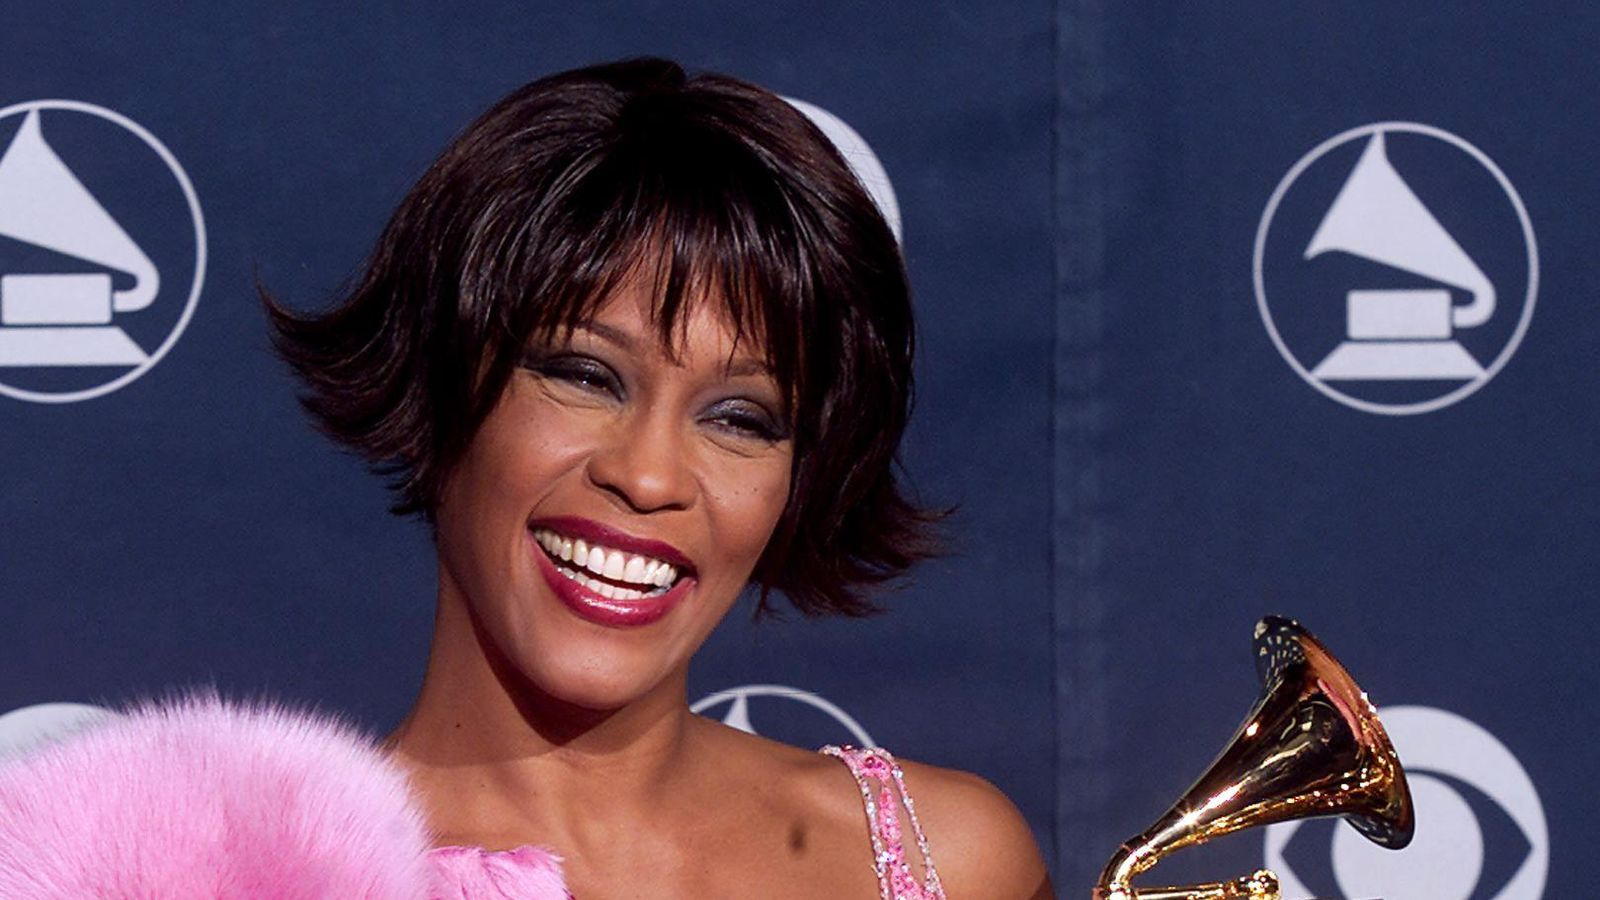 El departament forense de Los Angeles, als EUA, confirma que Whitney Houston va morir ofegada